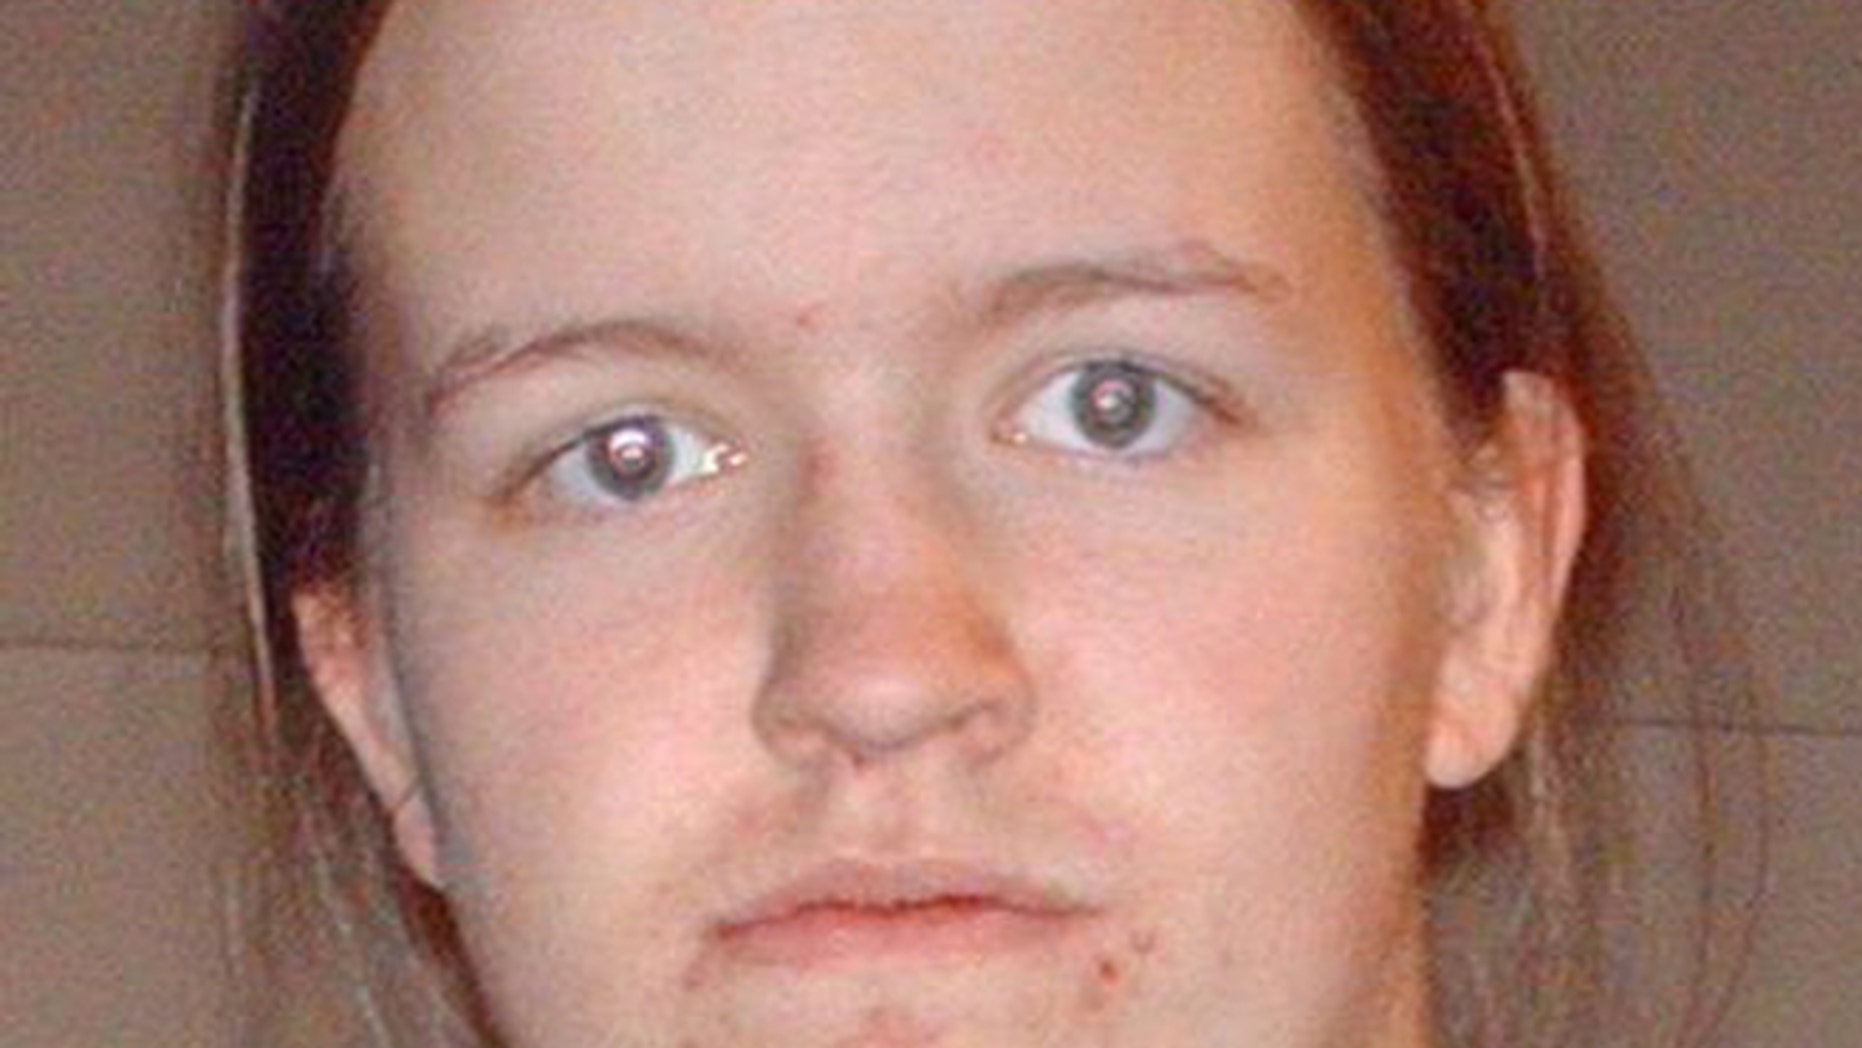 This undated photo provided by The Iowa Department of Public Safety shows Kathlynn Shepard, 15. Authorities said May 21, 2013, a man suspected of abducting Shepard and a 12-year-old girl from a bus stop in central Iowa has been found dead, but a search continues for Shepard.